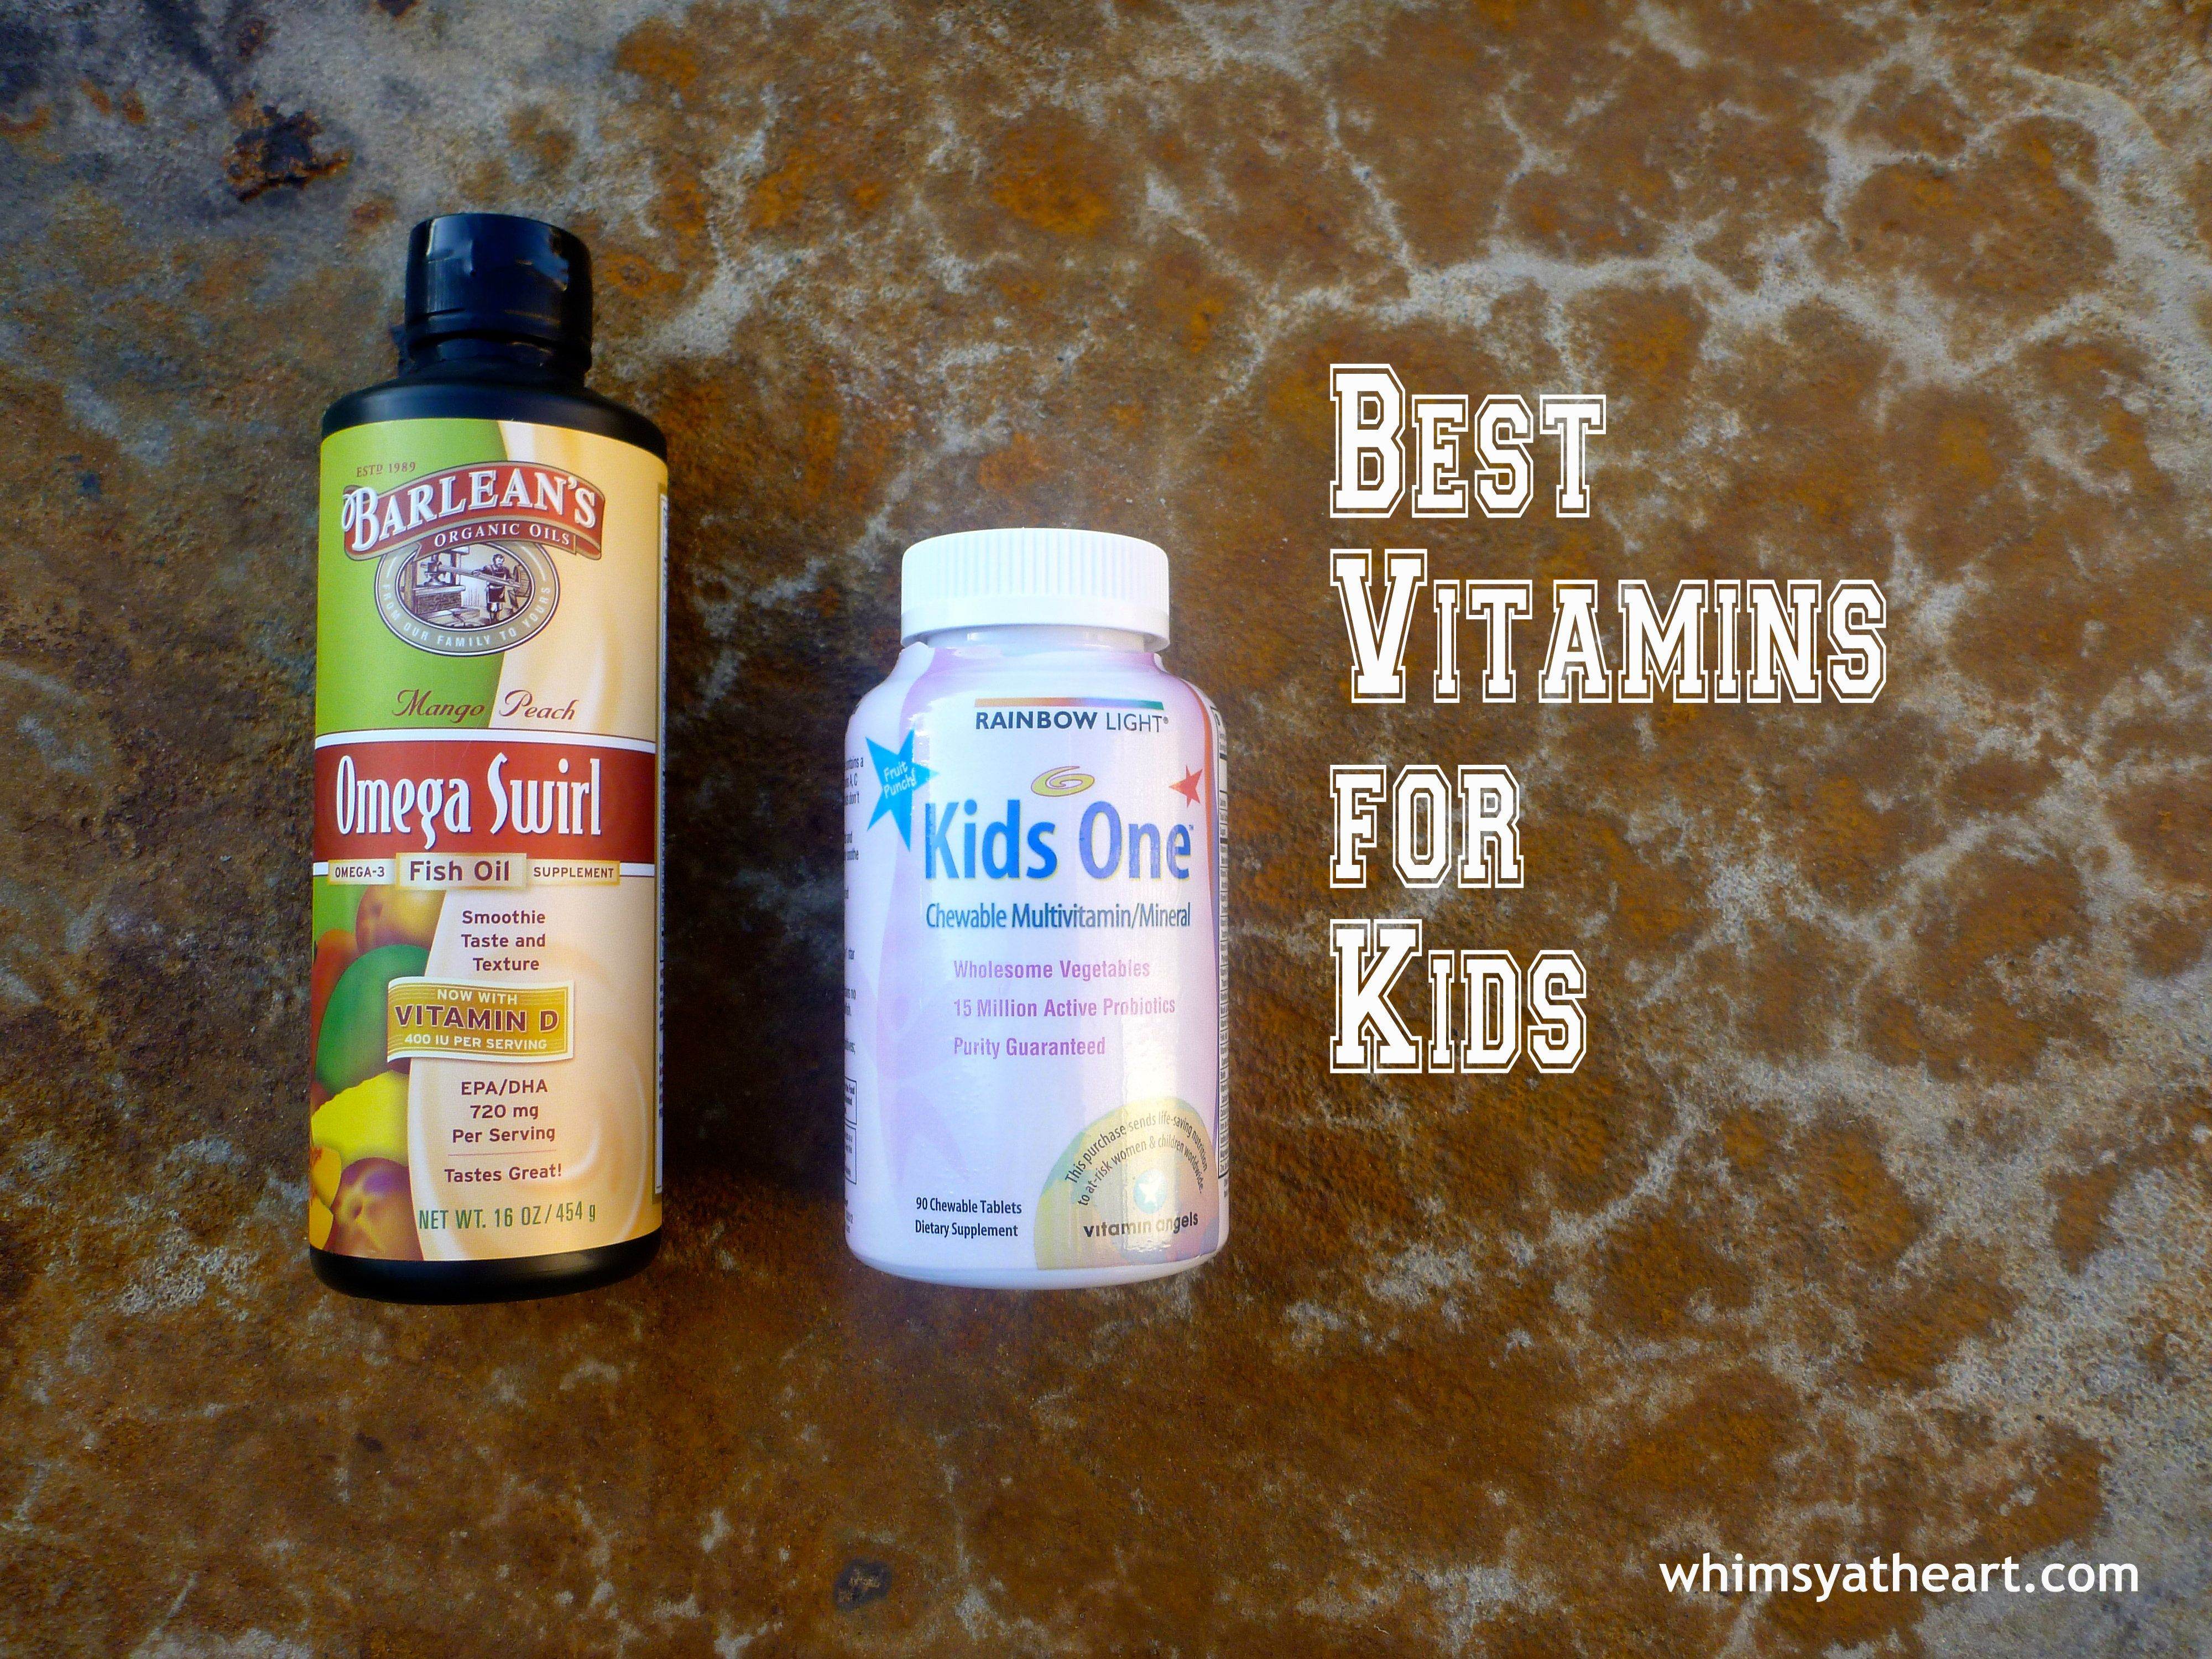 These 2 products are the best vitamins for kids because they provide ...